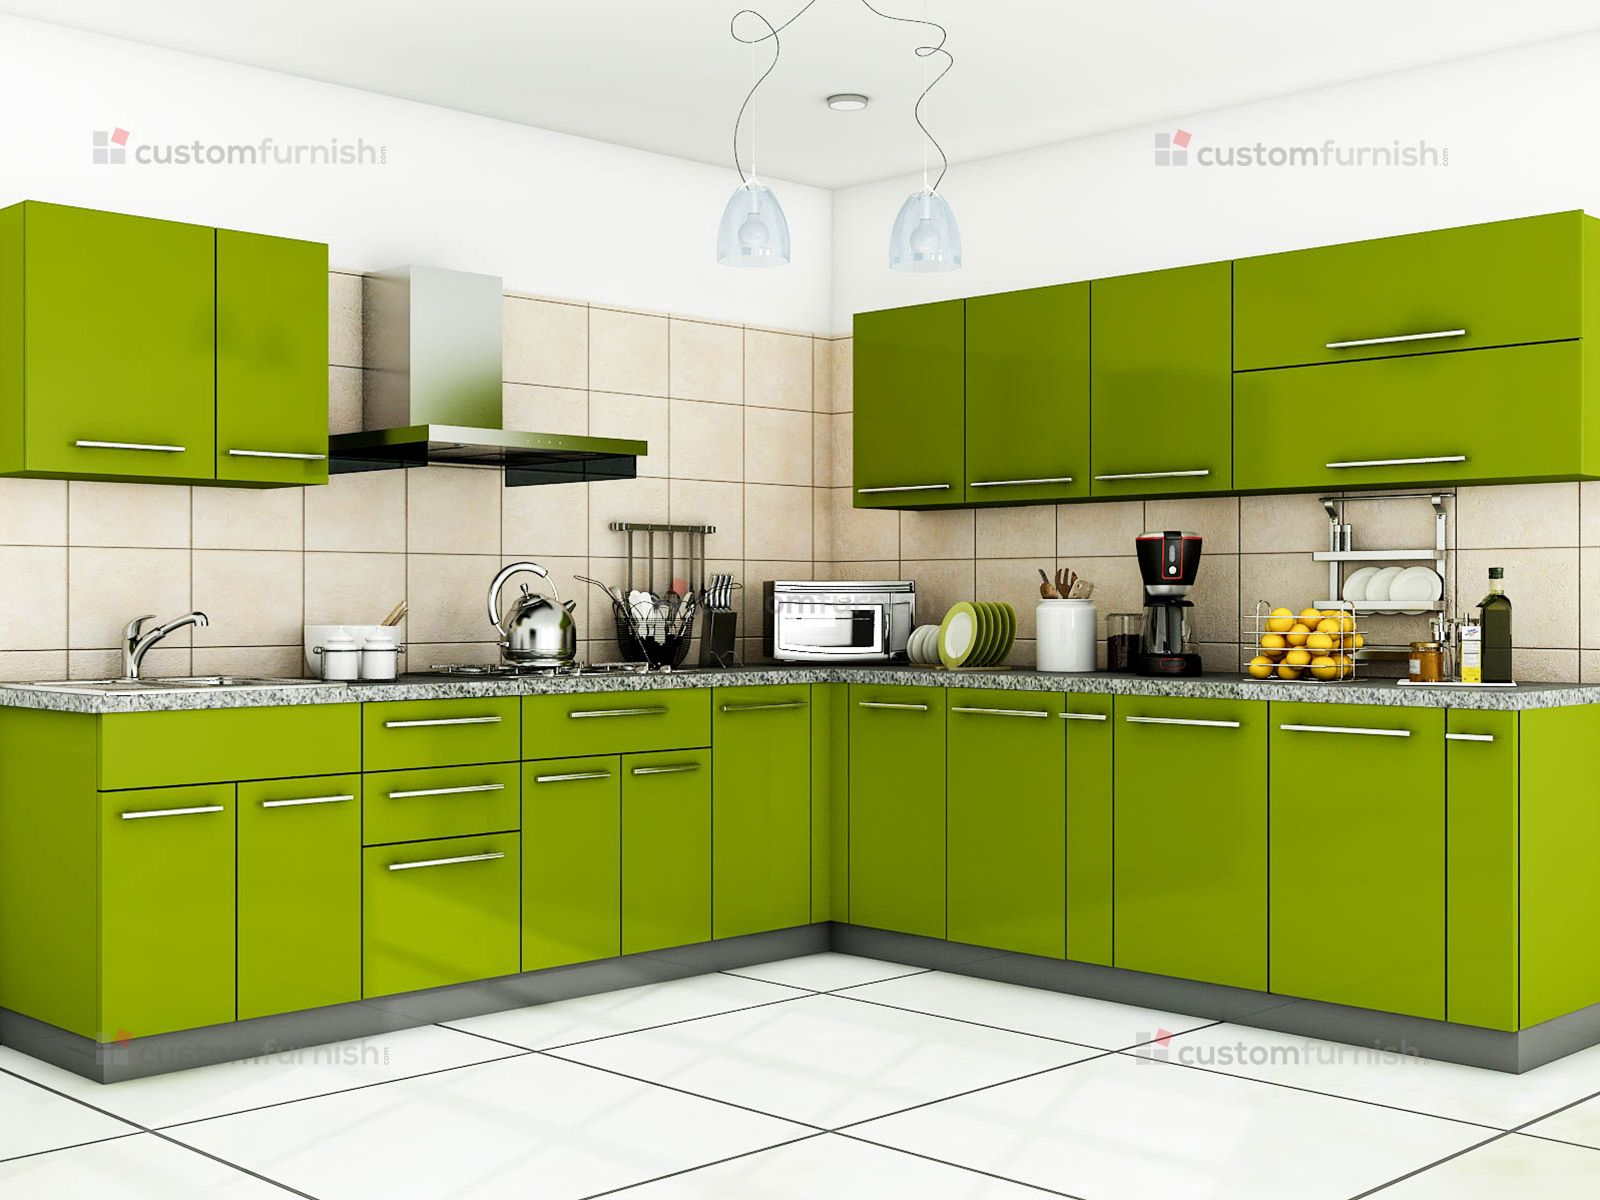 More Ideas Below Kitchenremodel Kitchenideas Indian Modular Kitchen Ideas Small Modular Kitchen Cabi Kitchen Furniture Design Kitchen Design Kitchen Modular